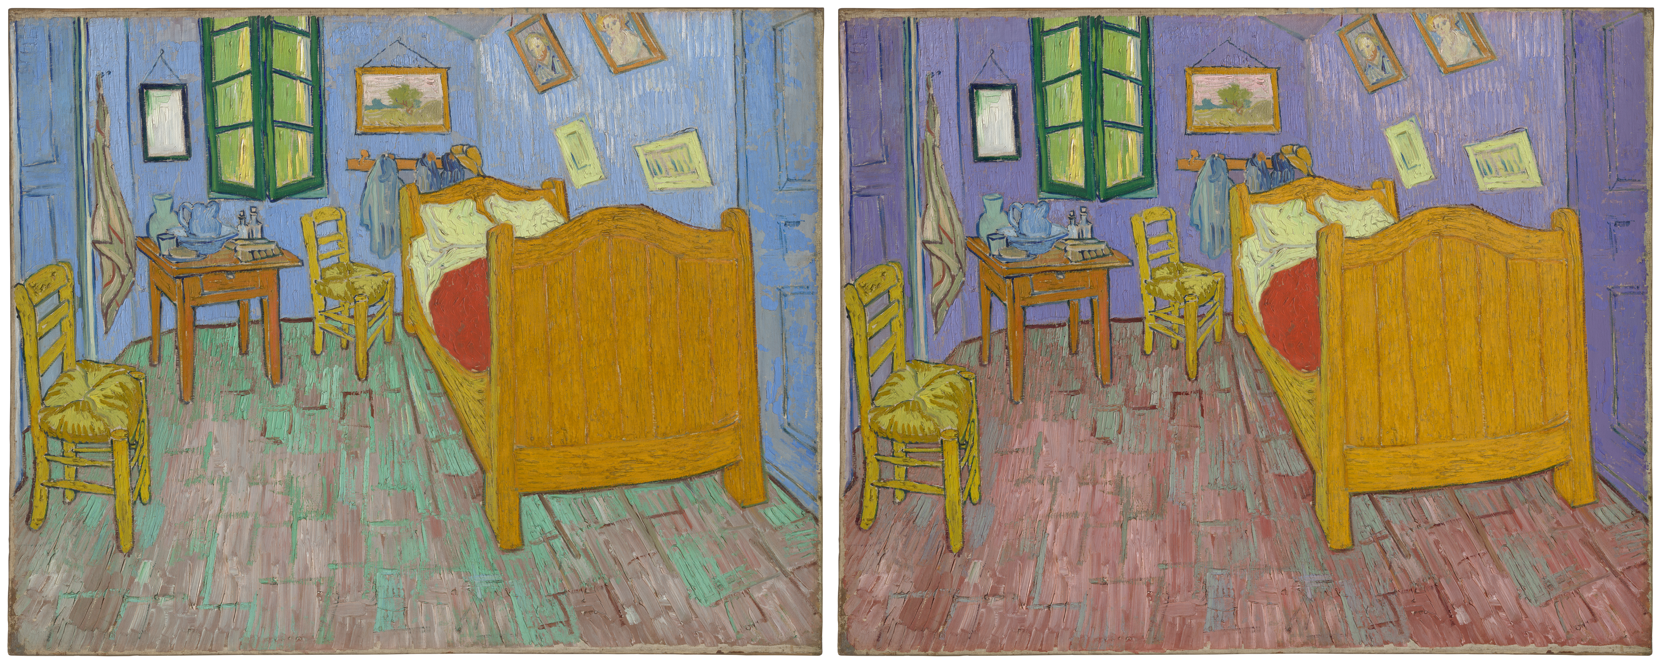 van gogh s bedroom walls weren t always blue science friday rh sciencefriday com van gogh's bedrooms let yourself in van gogh bedroom 3d